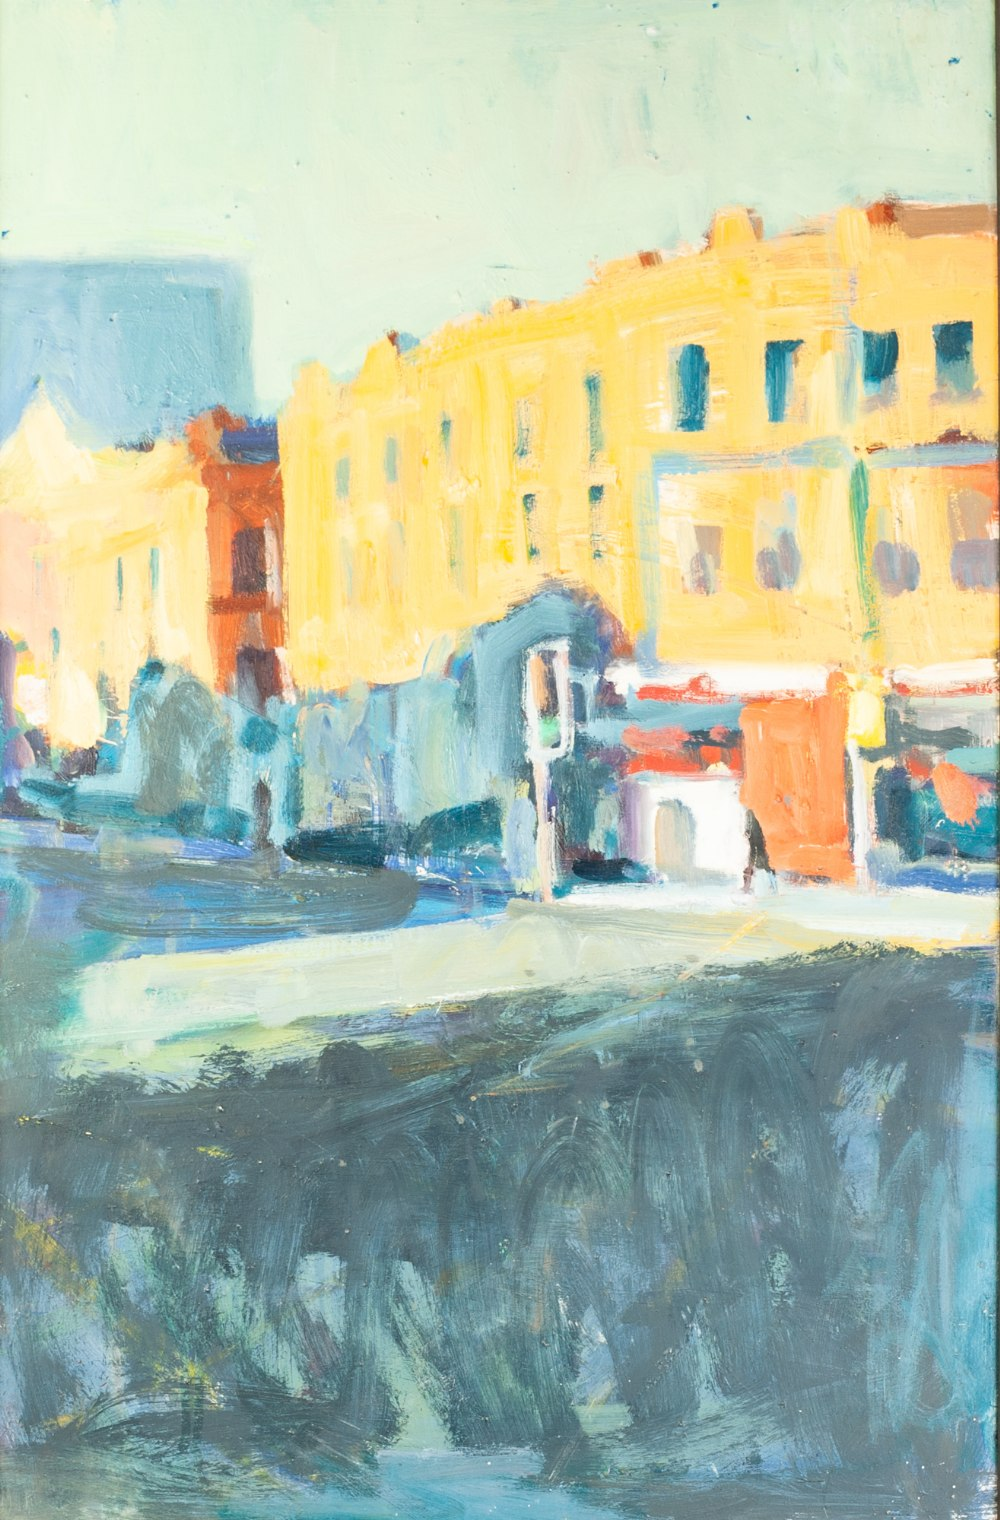 Lot 40 - PAUL BASSINGTHWAIGHTE (1963) OIL PAINTING ON BOARD 'Deansgate Corner' Signed to label verso 23 1/